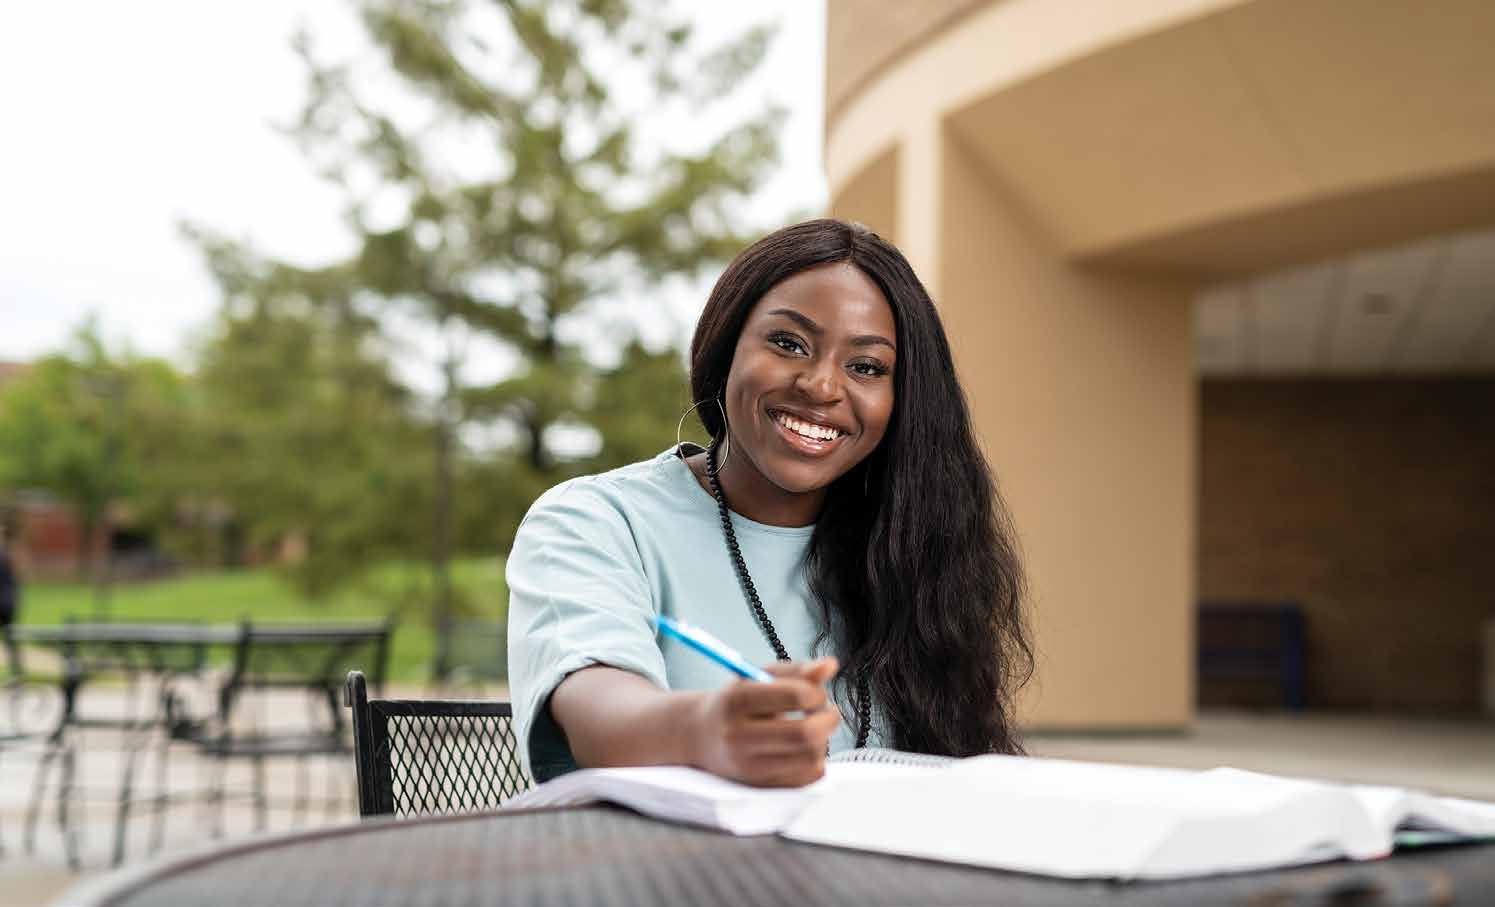 Kelechi Ofodu, a 17-year-old Degree in 3 student from Lee's Summit, Missouri, starts classes at Metropolitan Community College this fall. She'll take advantage of KU Edwards Campus' MetroRate to pay in-state tuition costs.Photo by Steve Puppe.